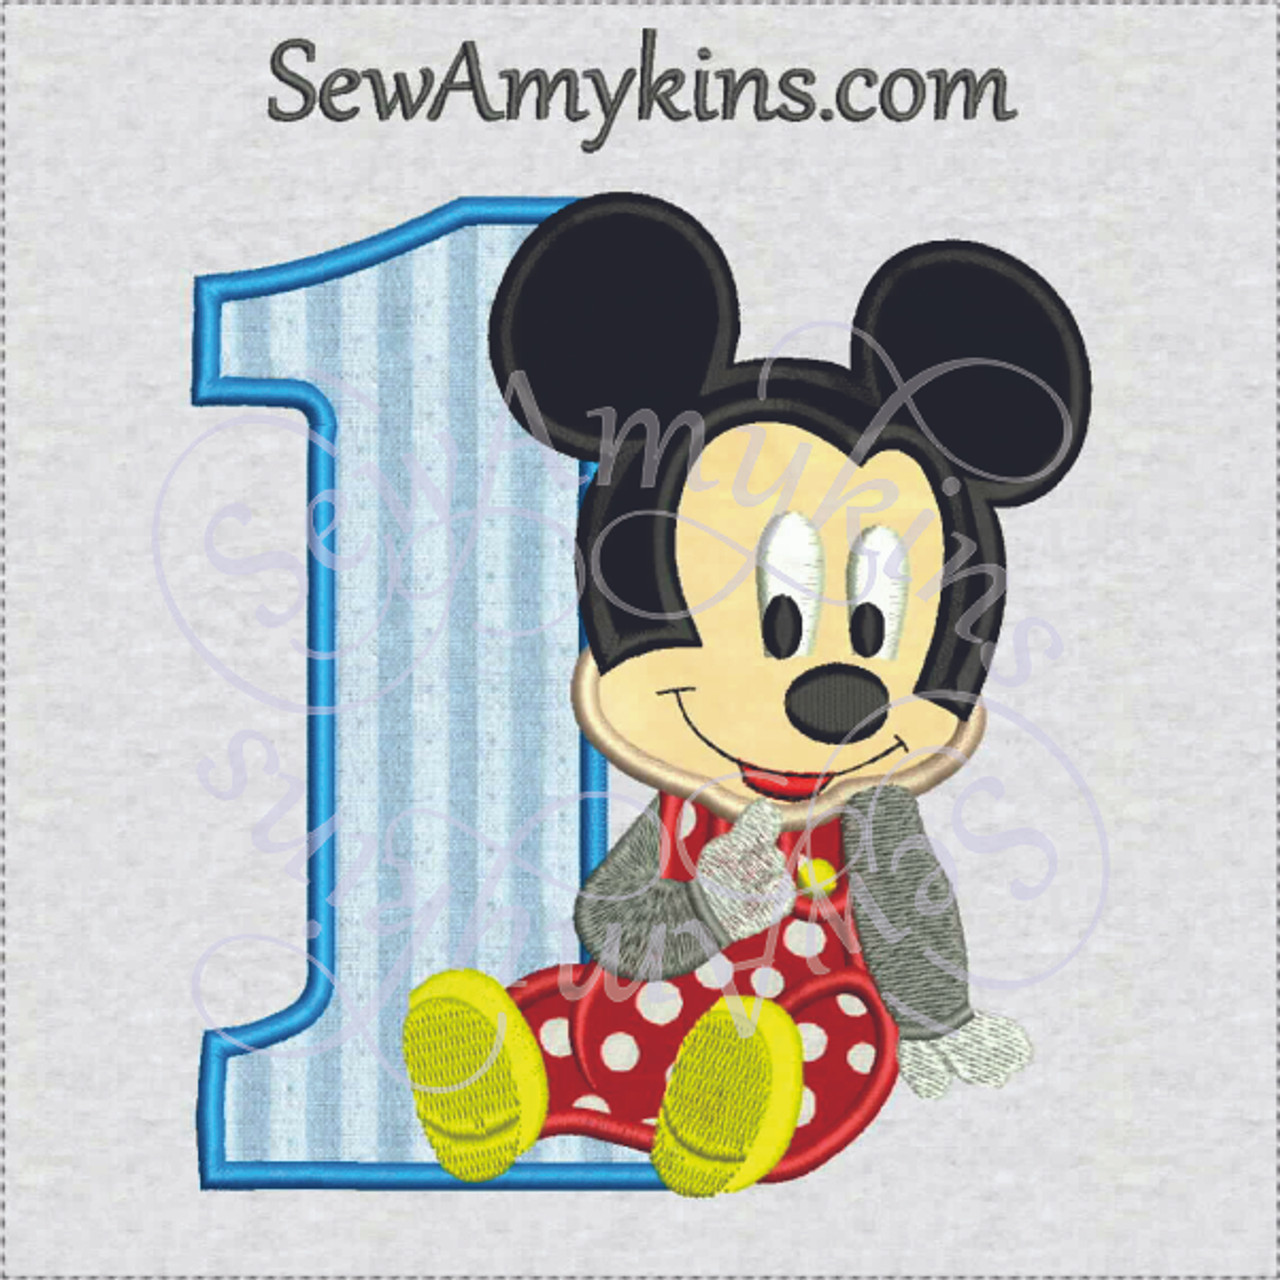 Baby Mickey Mouse 1st Birthday.Baby Mickey Mouse 1st Birthday Boy First One Applique Machine Embroidery Design 2 Sizes